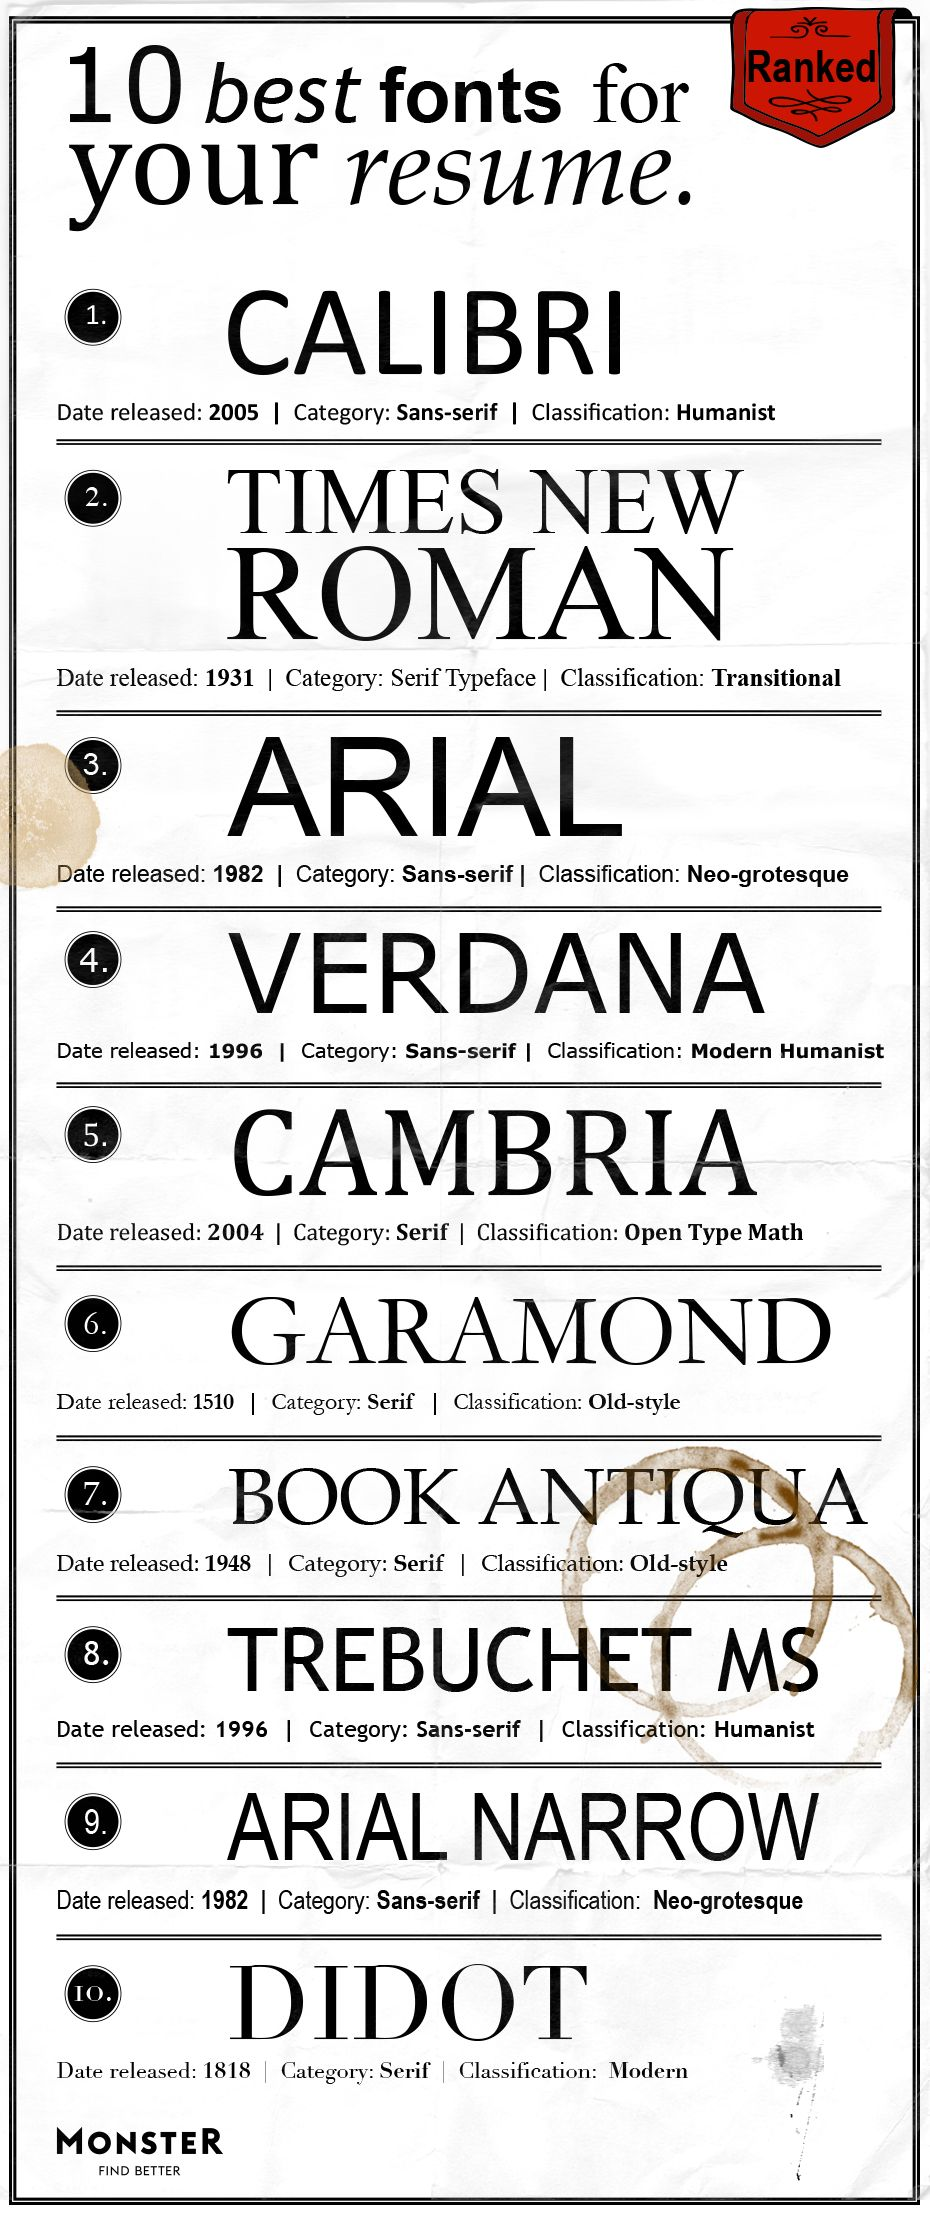 The best fonts for your resume ranked | Fonts, Resume ideas and ...